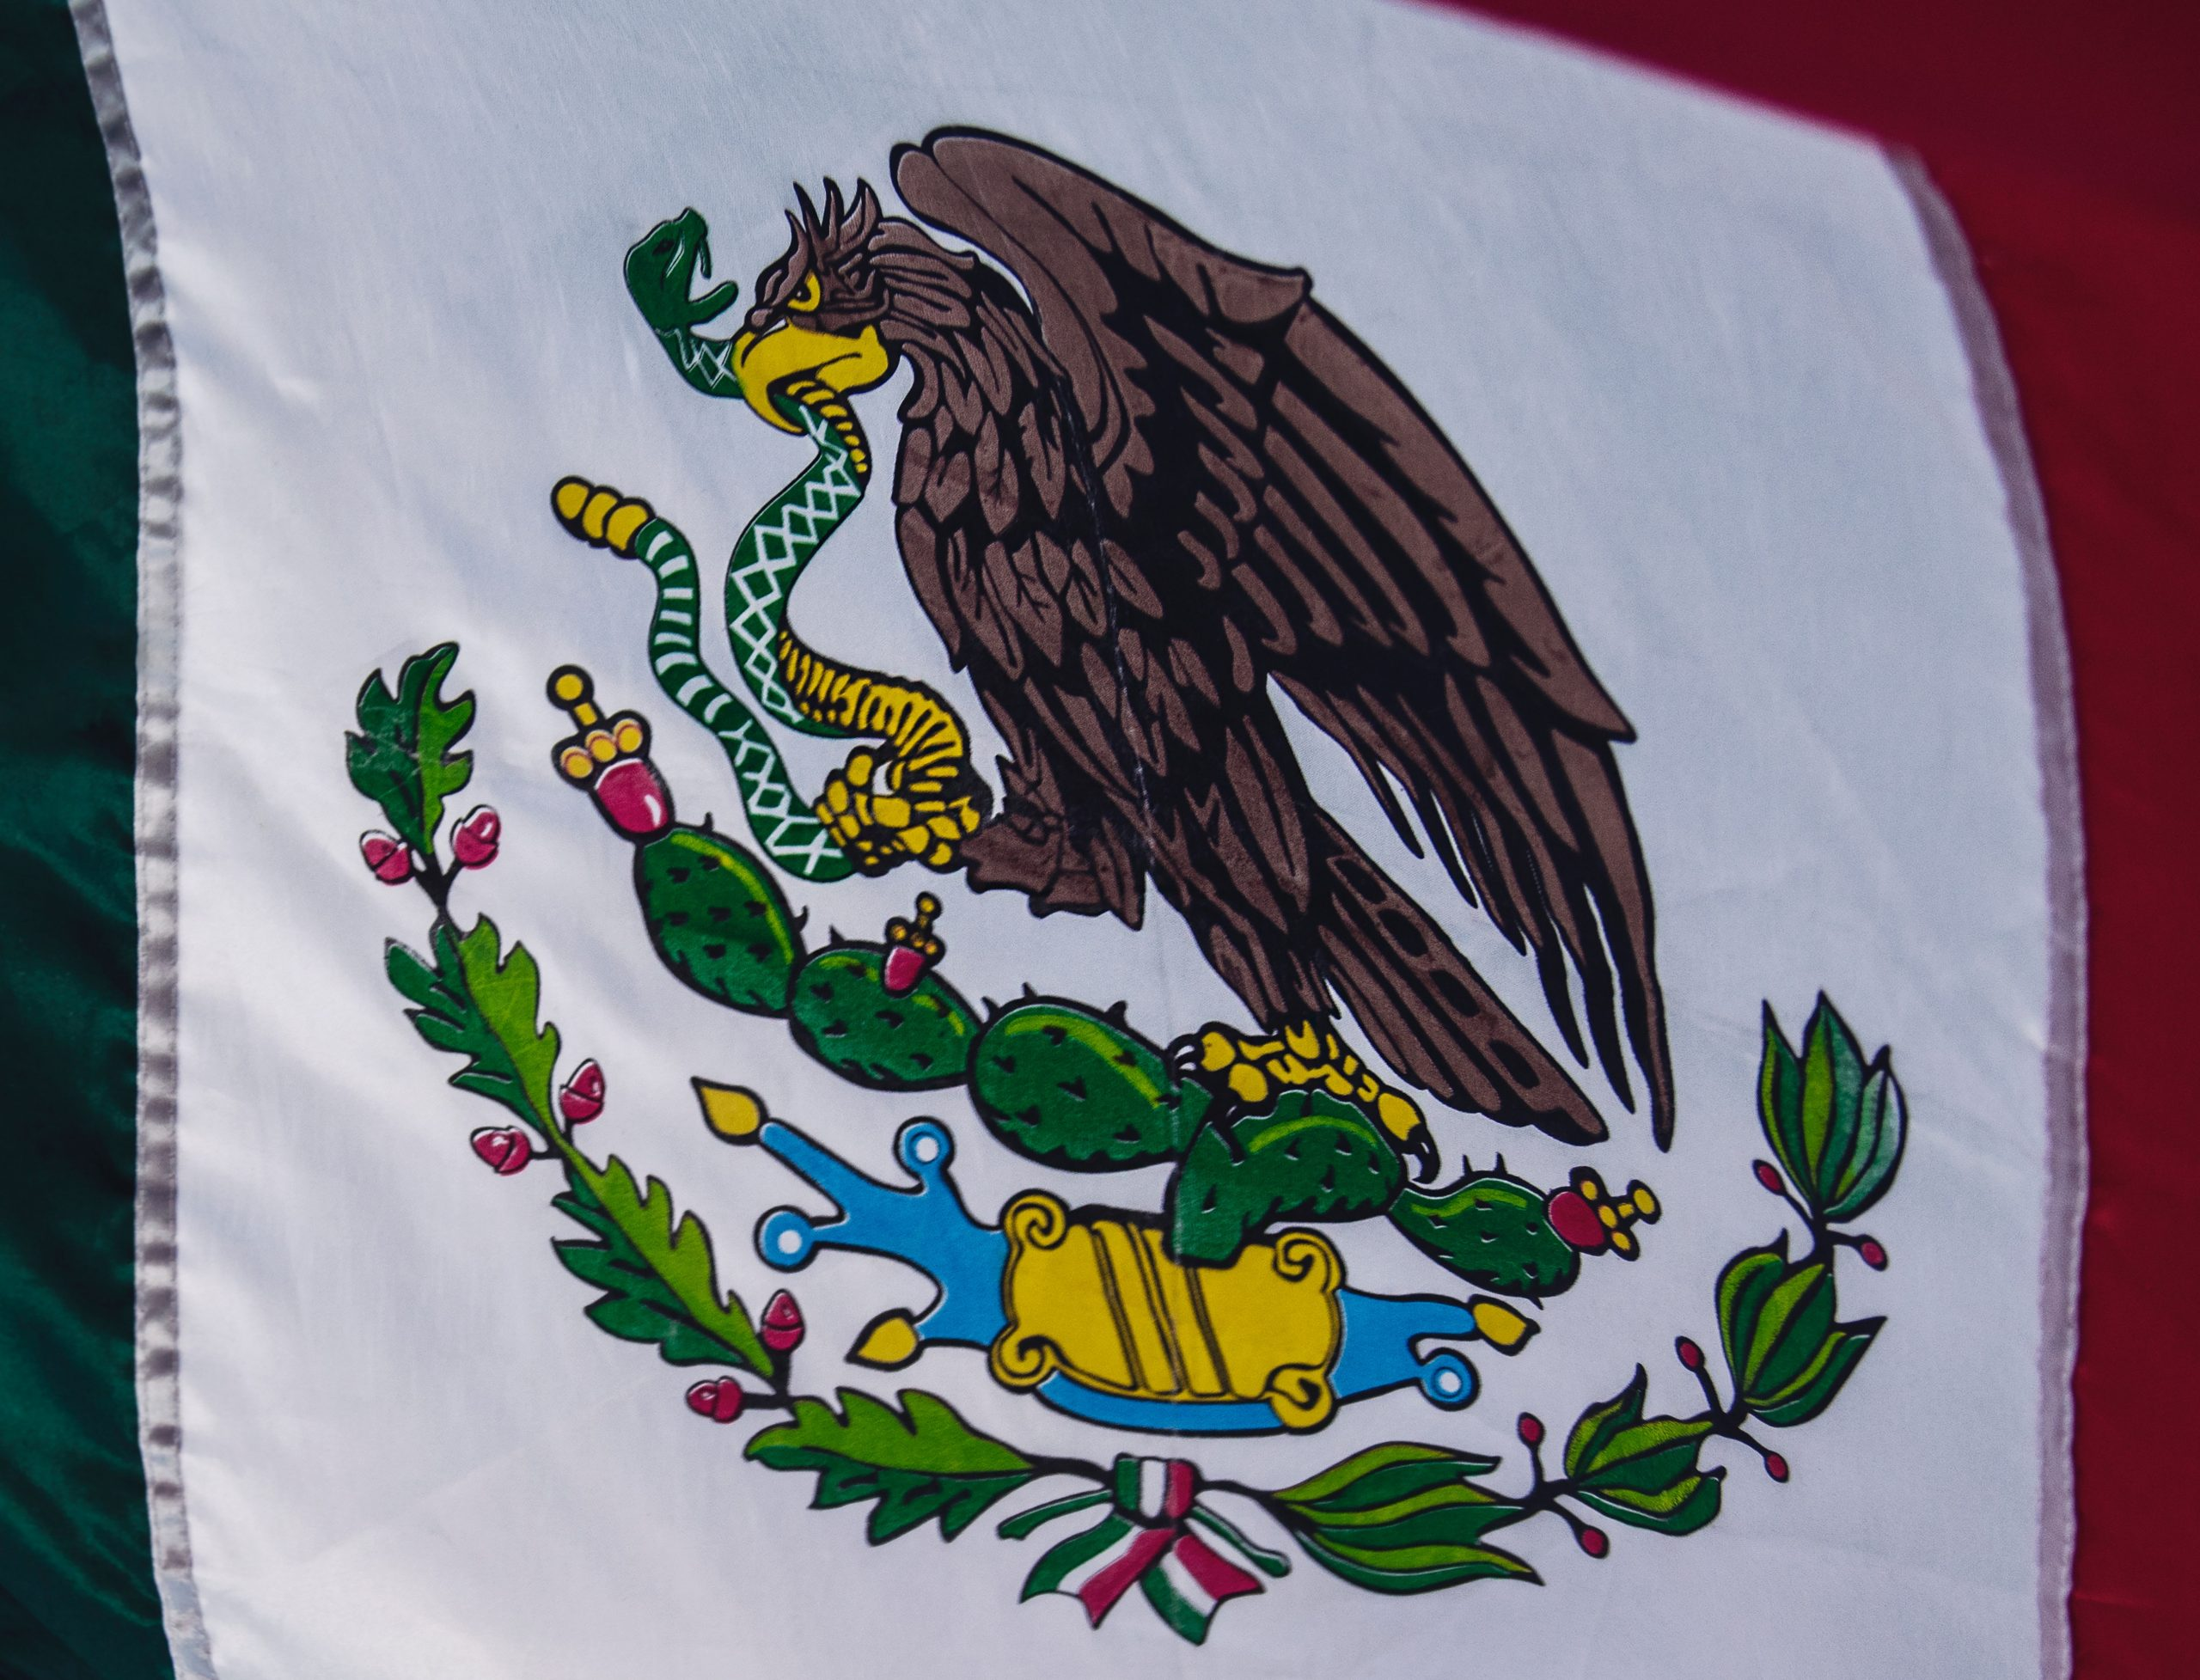 Did you know Cinco de Mayo is mistaken for Mexico's Independence Day?